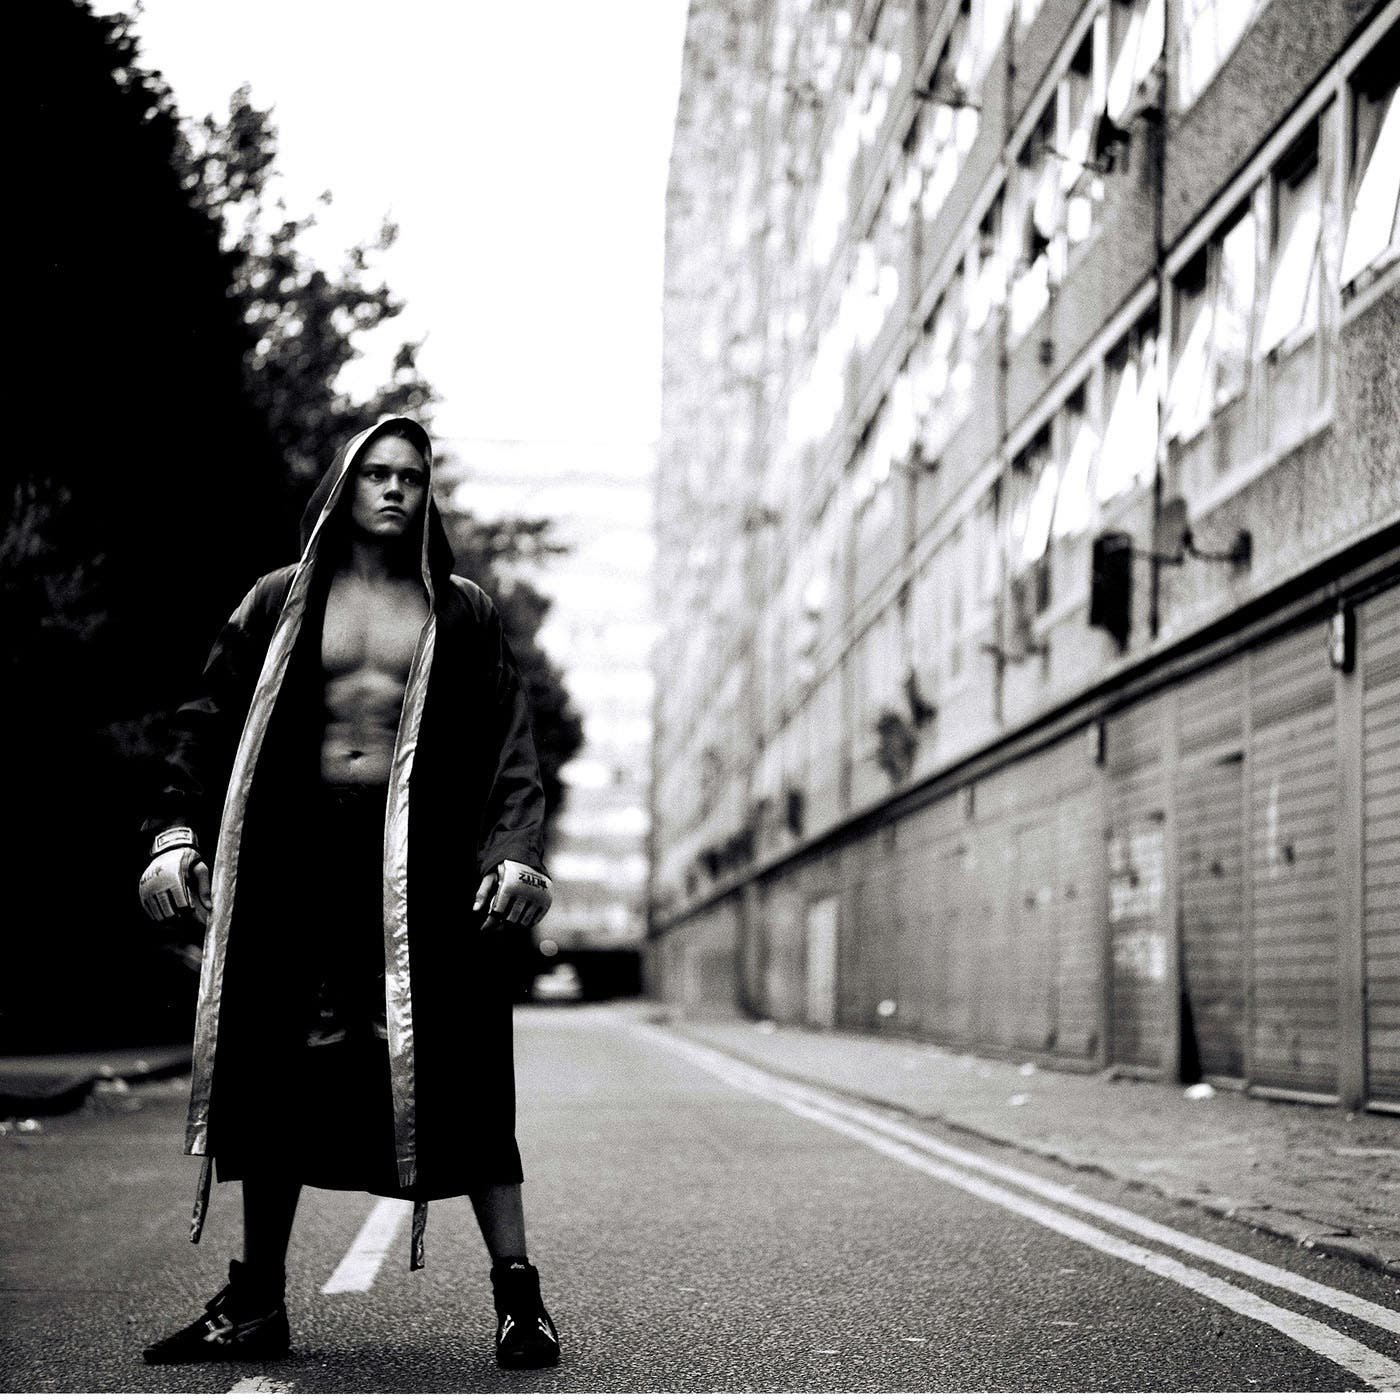 John Ferguson Documents the Tough Life of London's Cage Fighters